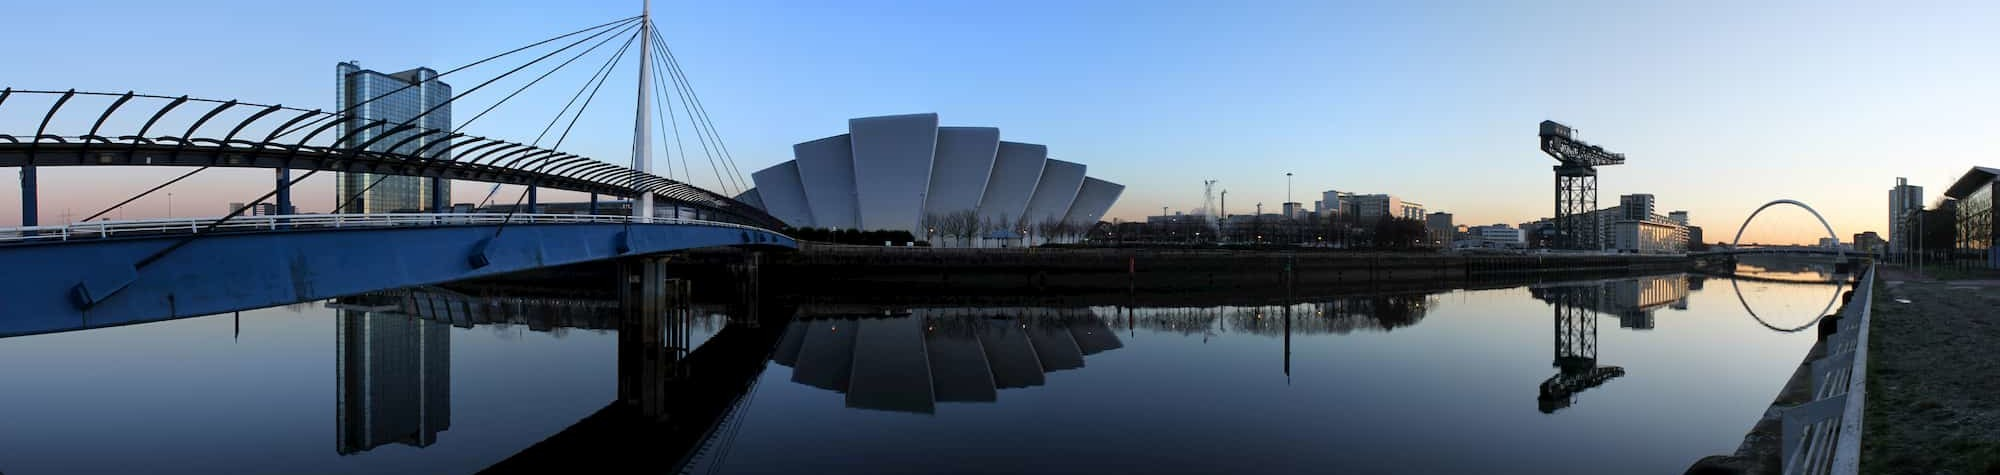 Search Consultancy Glasgow Header Image. Featuring a panoramic view of the Clyde Arc Bridge, Scottish Exhibition Centre and other landmark buildings along the River Clyde in Glasgow. Home to one of Search's exceptional recruitment agencies.